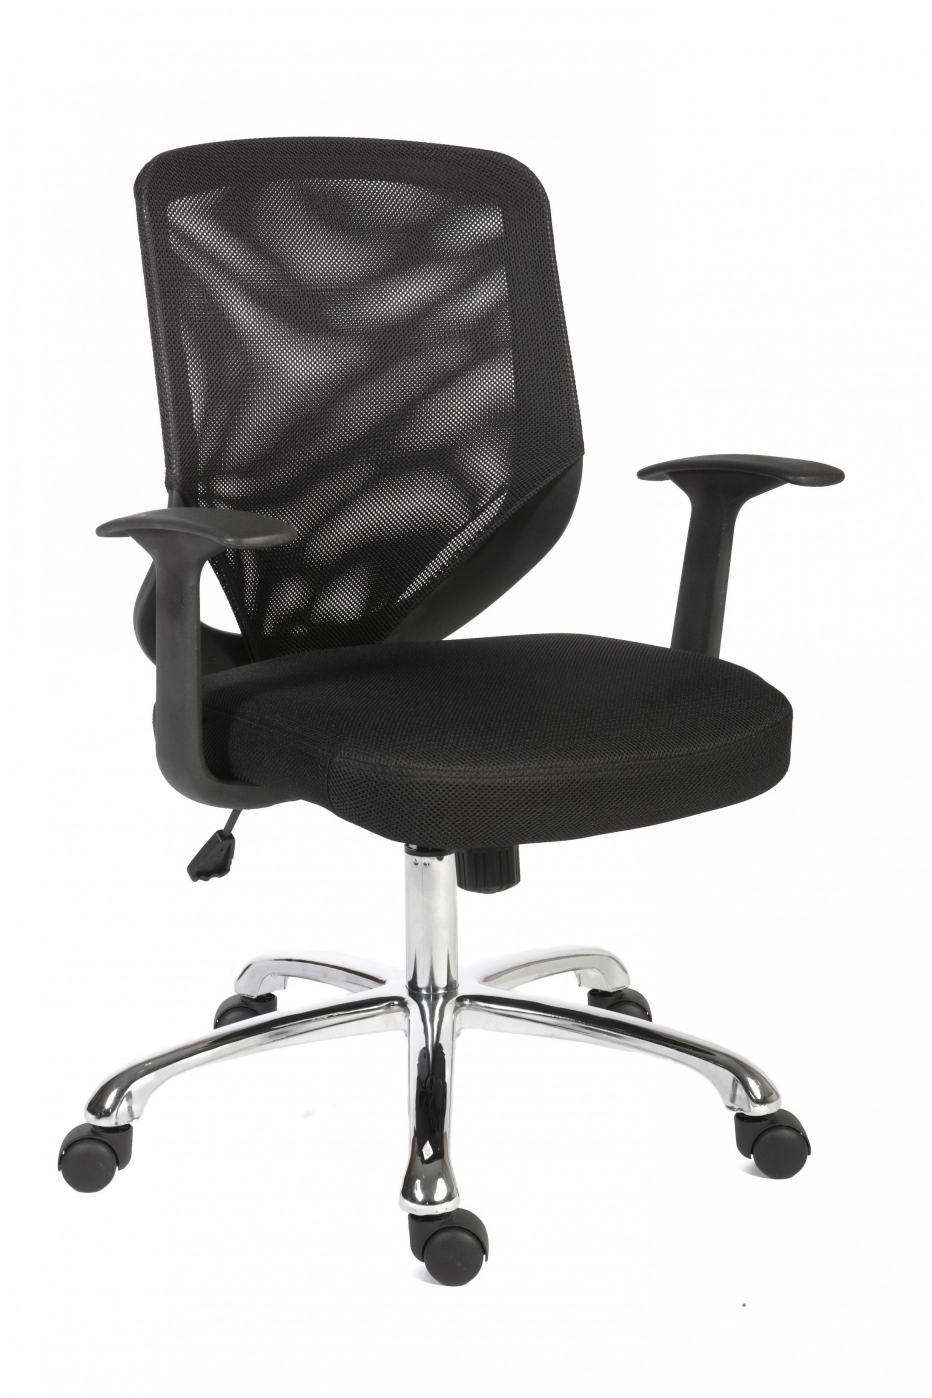 mesh office chair office chairs uk contemporary office. Black Bedroom Furniture Sets. Home Design Ideas